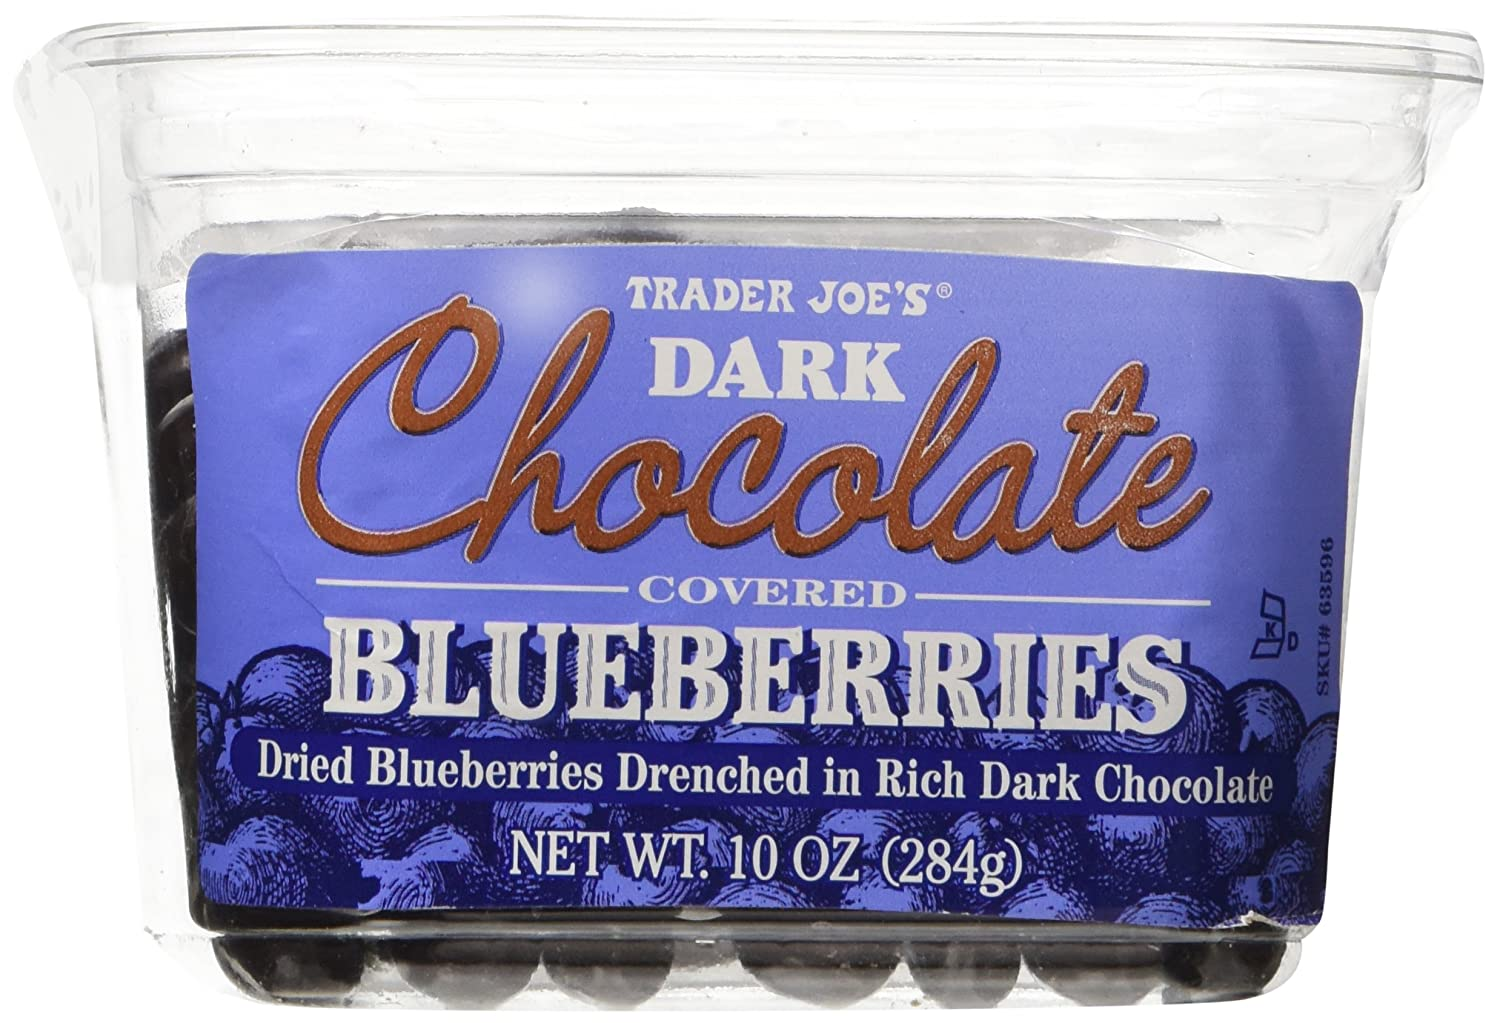 Trader Joe's Dark Chocolate Covered Blueberries - Net Wt. 10 oz